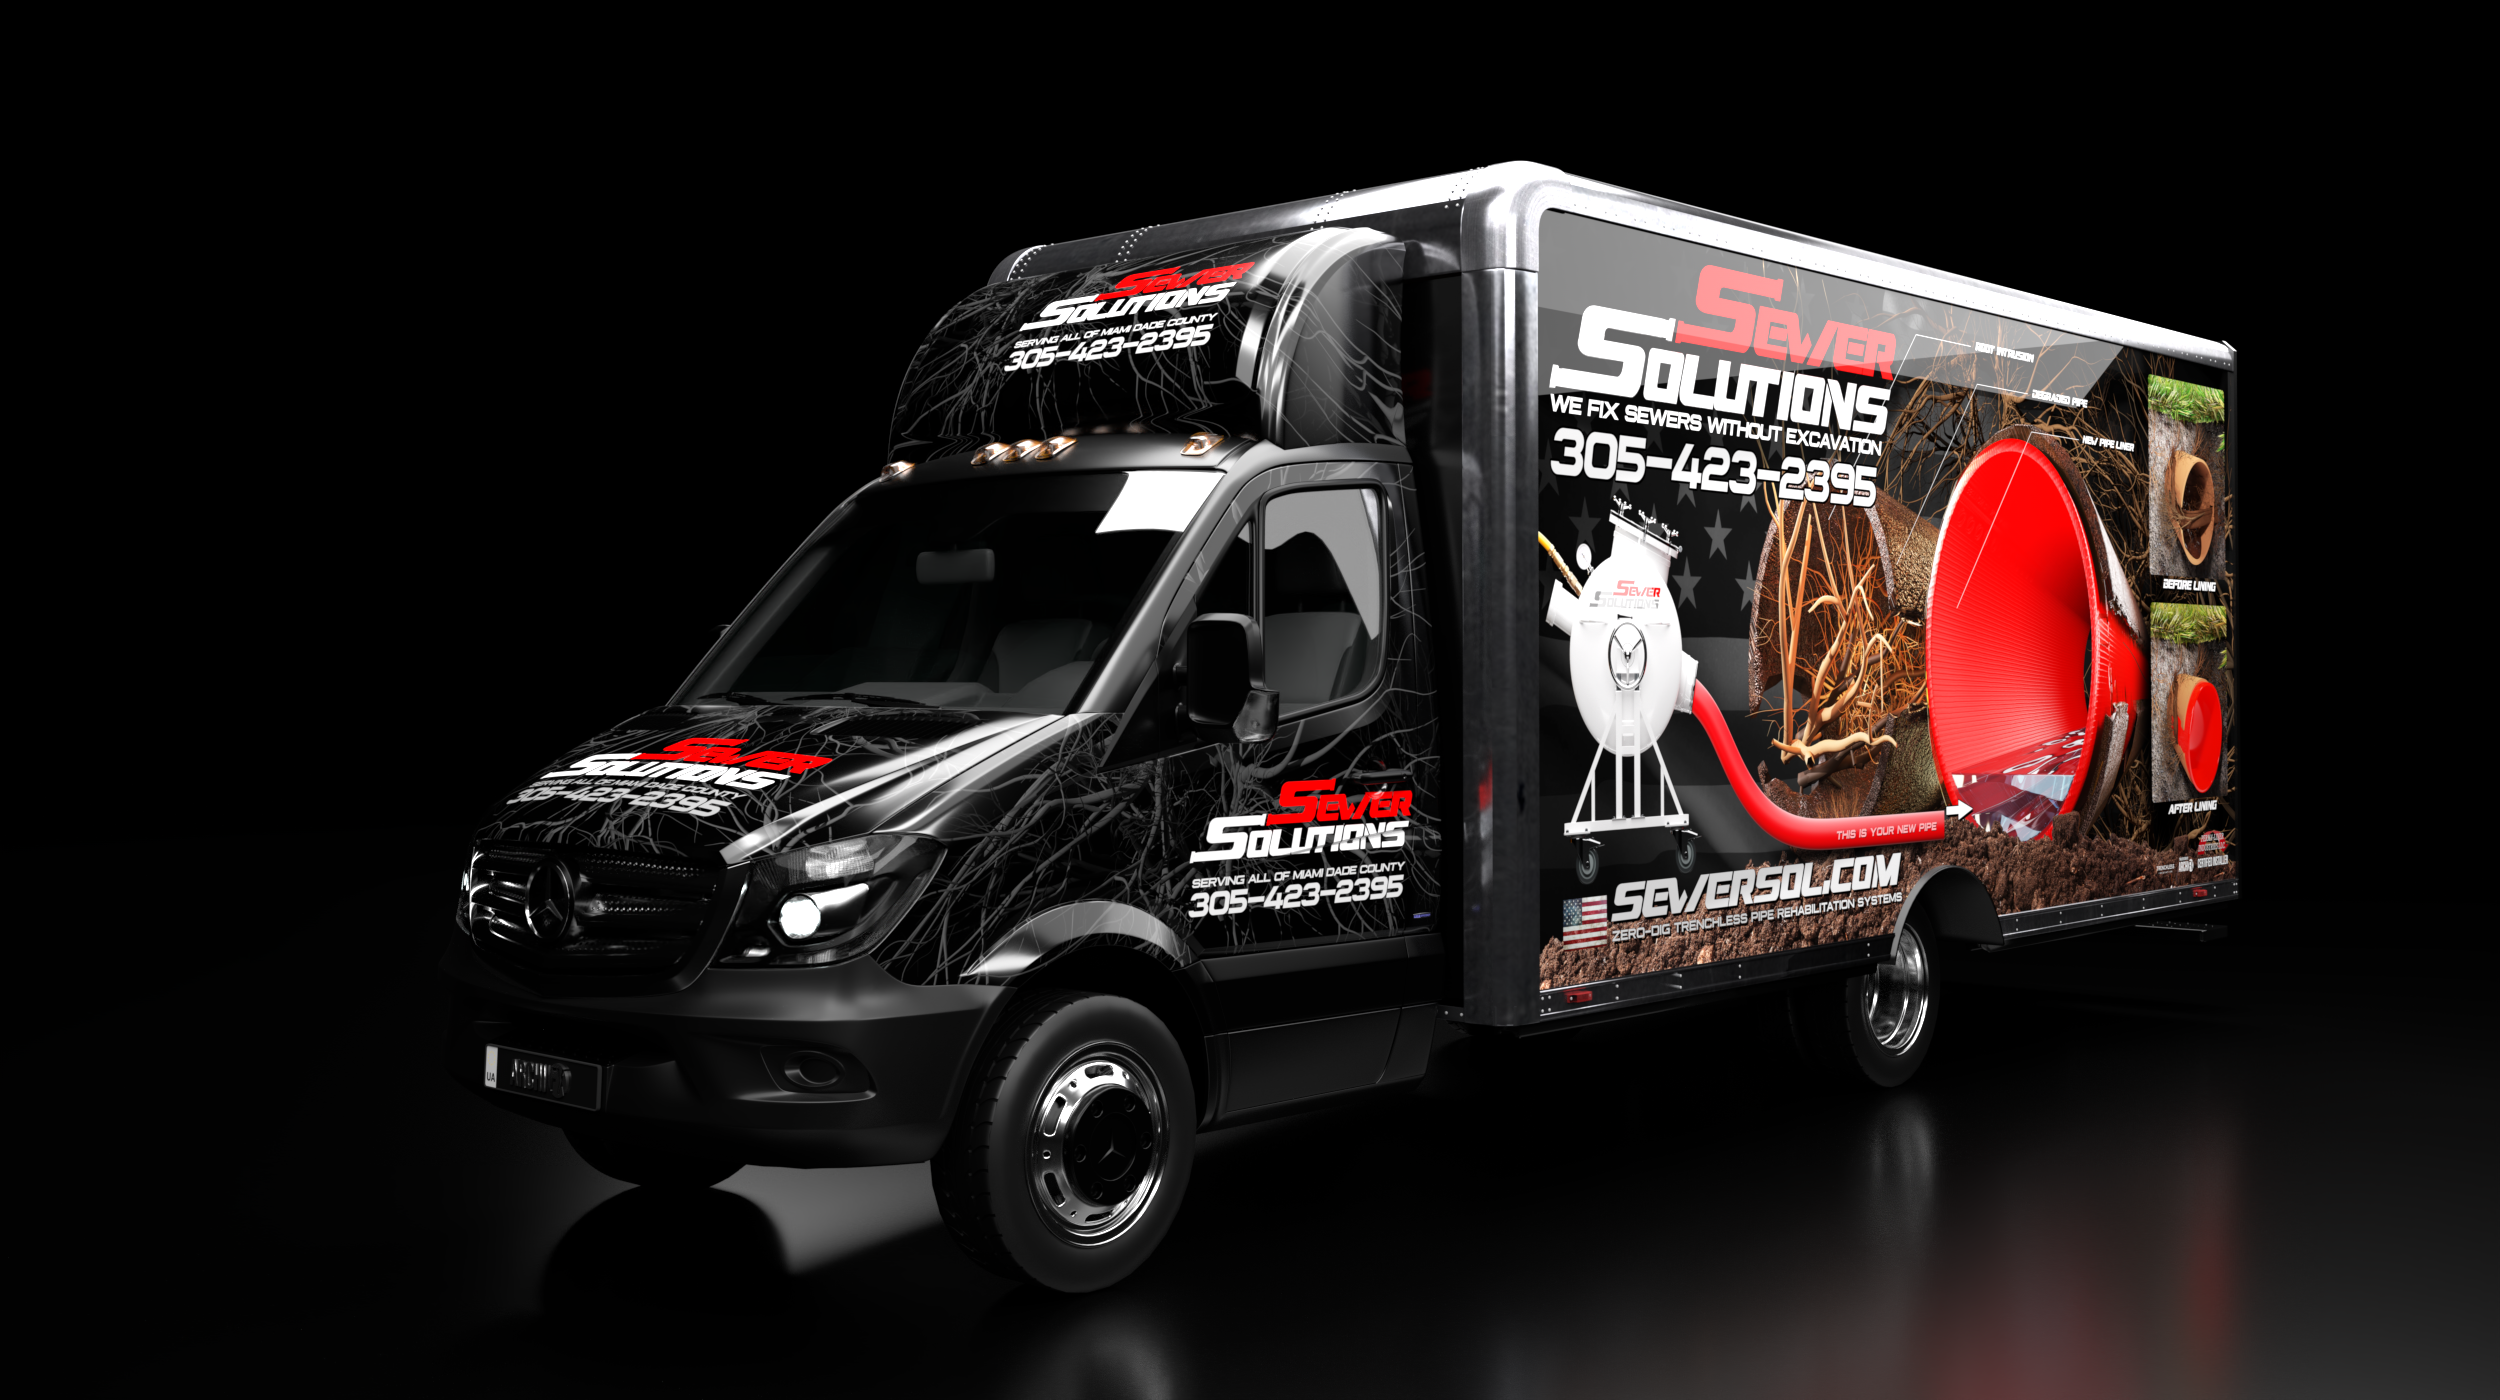 sewer-solutions-sprinter-box-truck-8png